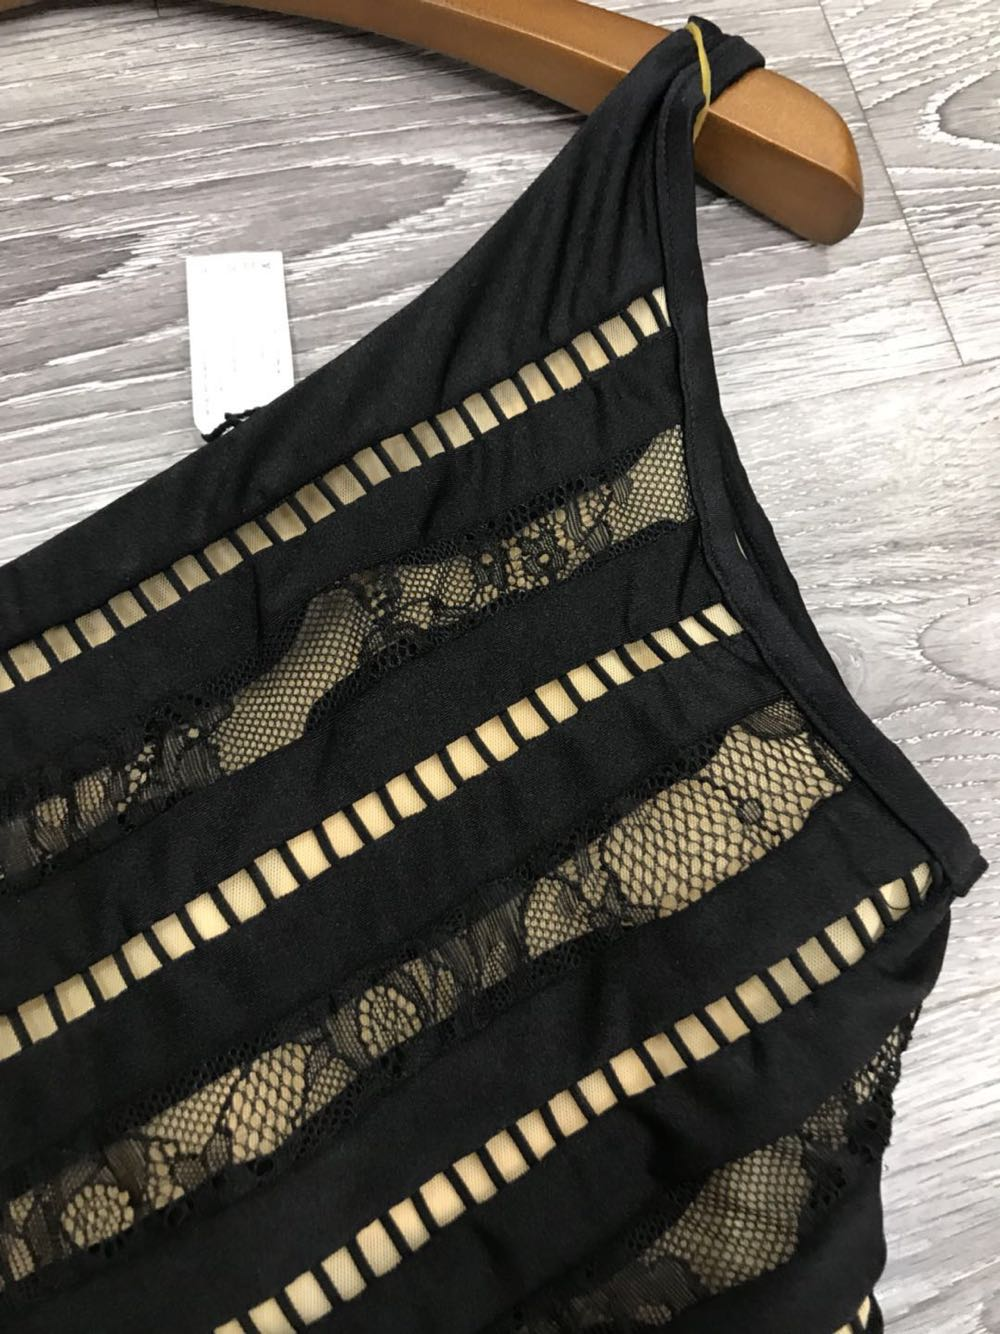 One Shoulder Lace Backless Bodysuit Women Hollow Out Sleeveless Black Sexy Summer Swimsuit Bodycon